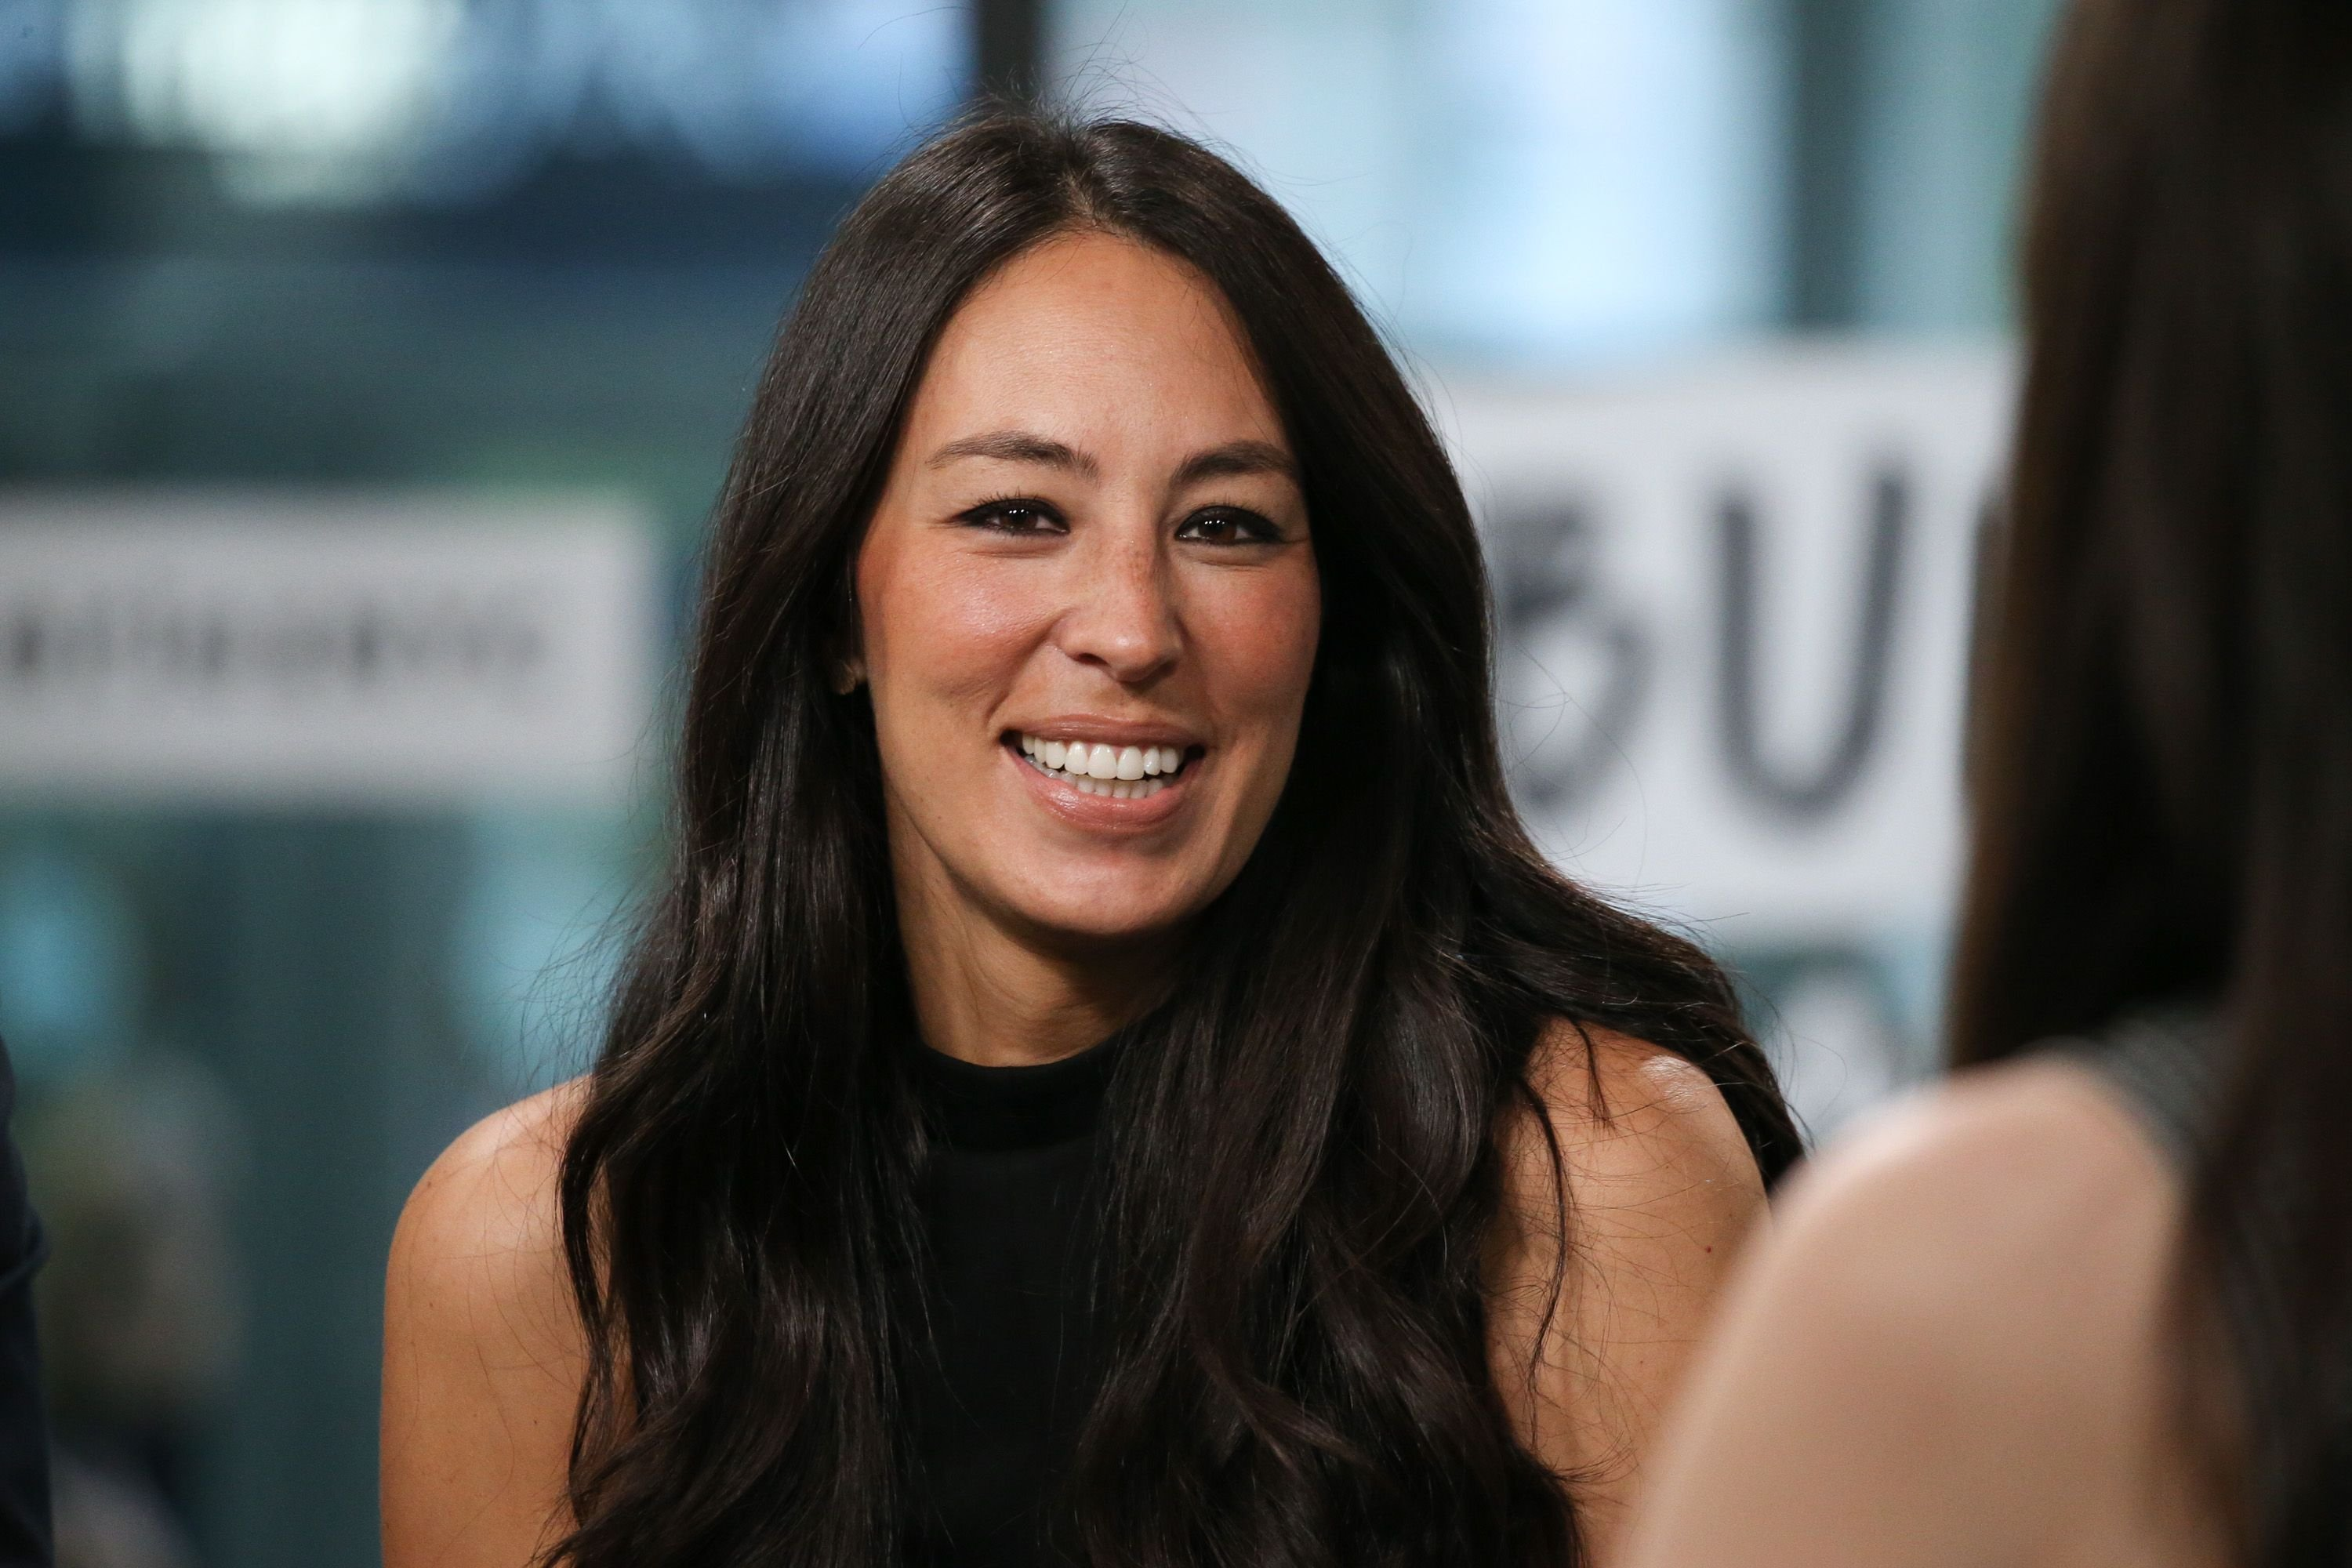 """Joanna Gaines discusses her book, """"Capital Gaines: Smart Things I Learned Doing Stupid Stuff""""  on October 18, 2017 